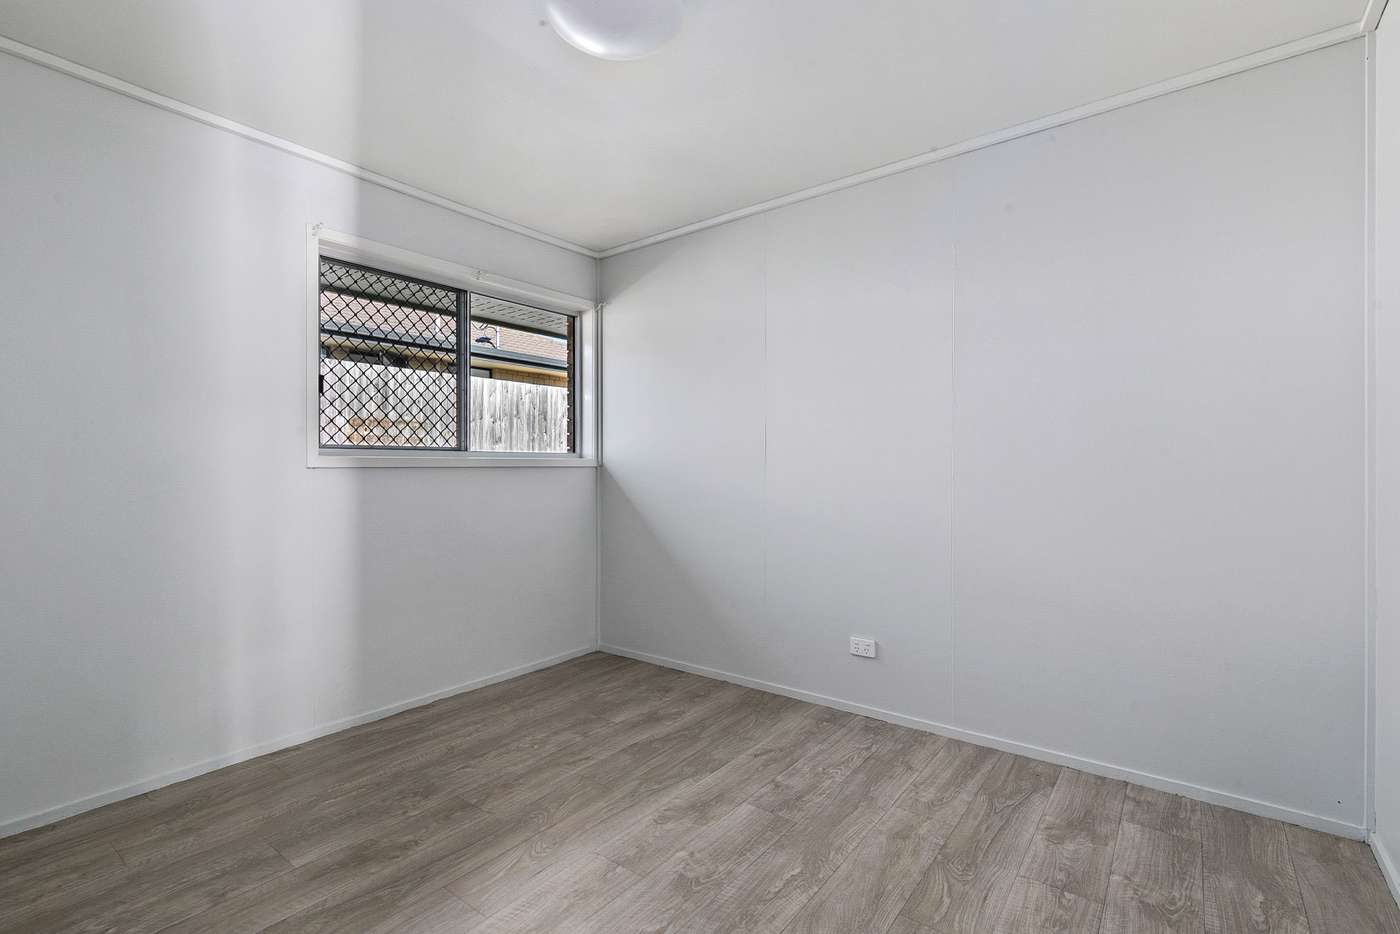 Sixth view of Homely house listing, 9 Rofail Court, Thorneside QLD 4158